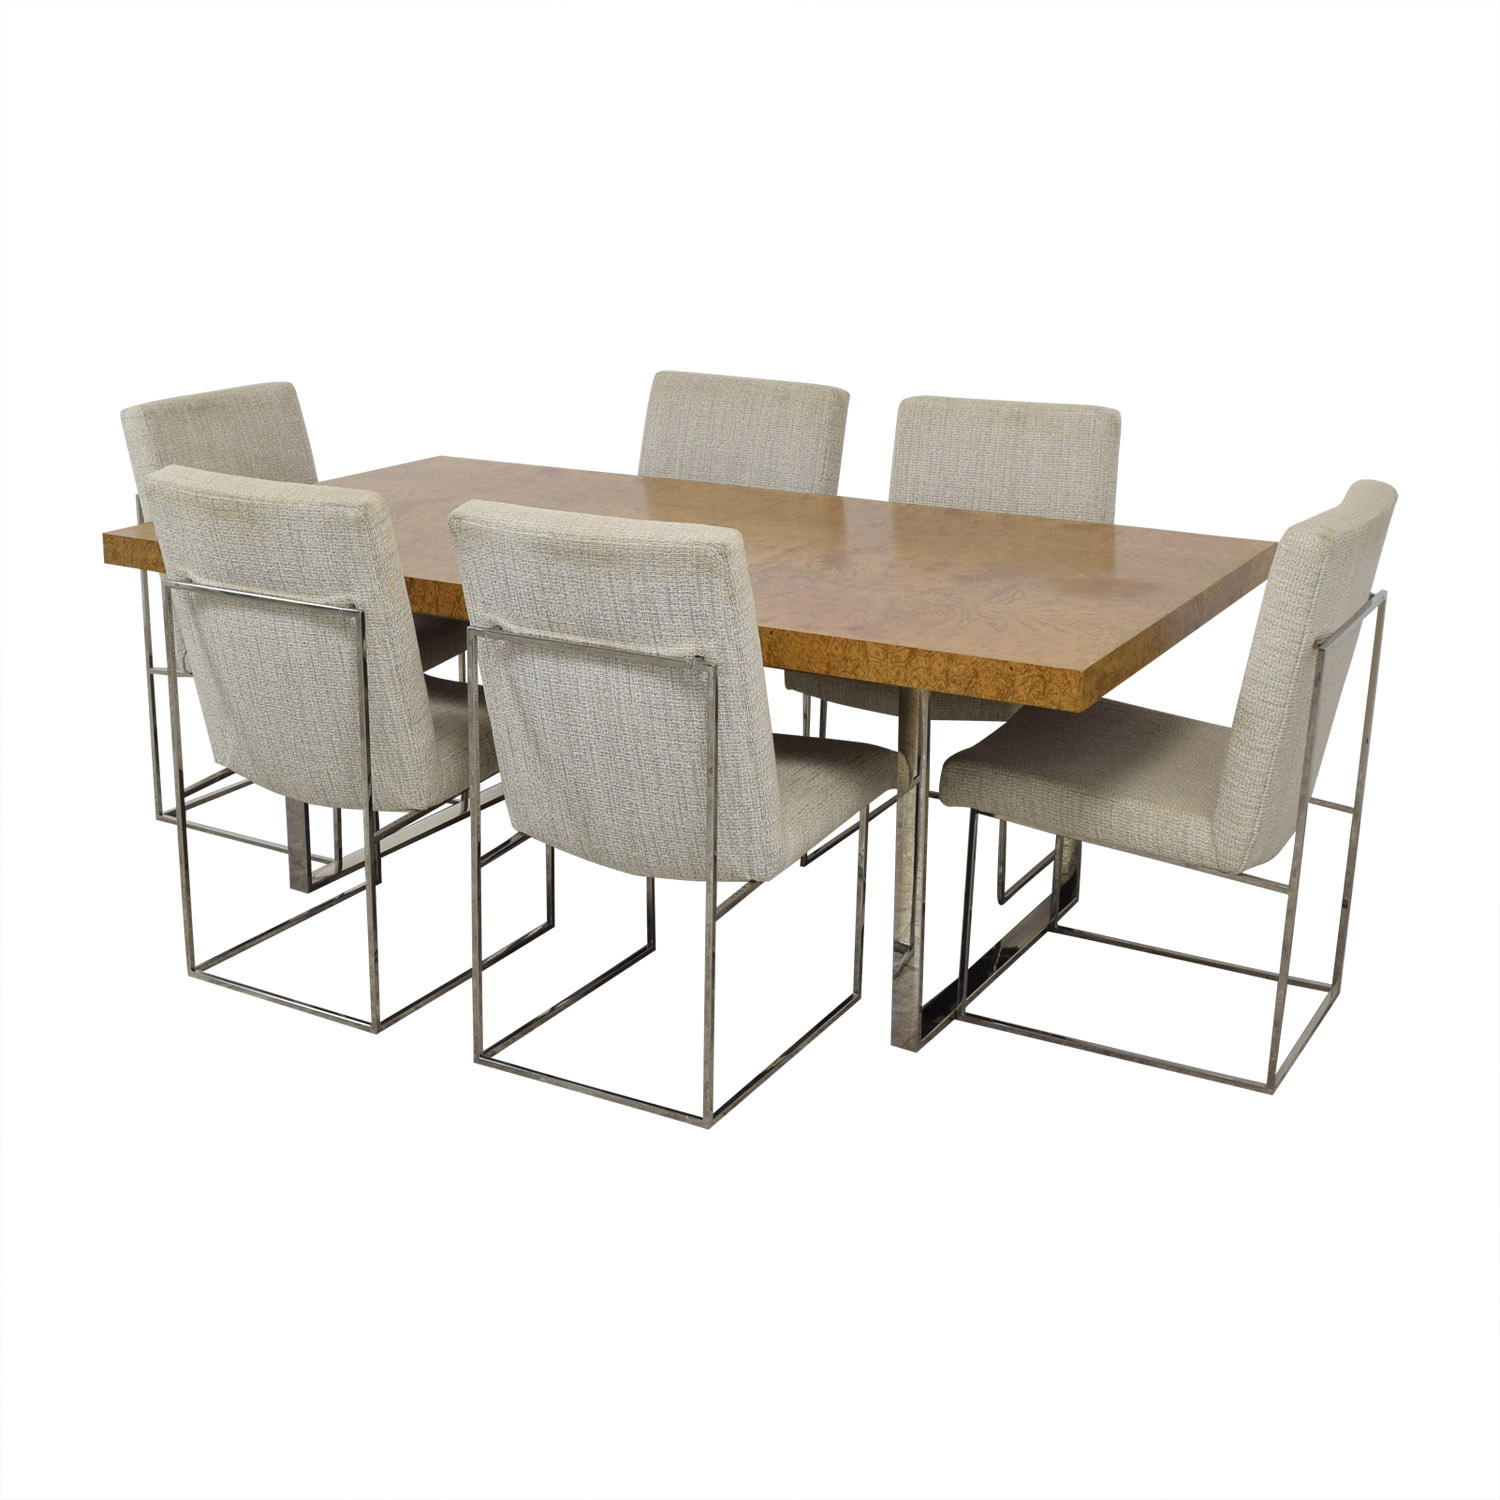 buy Thayer Coggin Thayer Coggin Burl Dining Set with Design Classic Dining Chair by Milo Baughman online